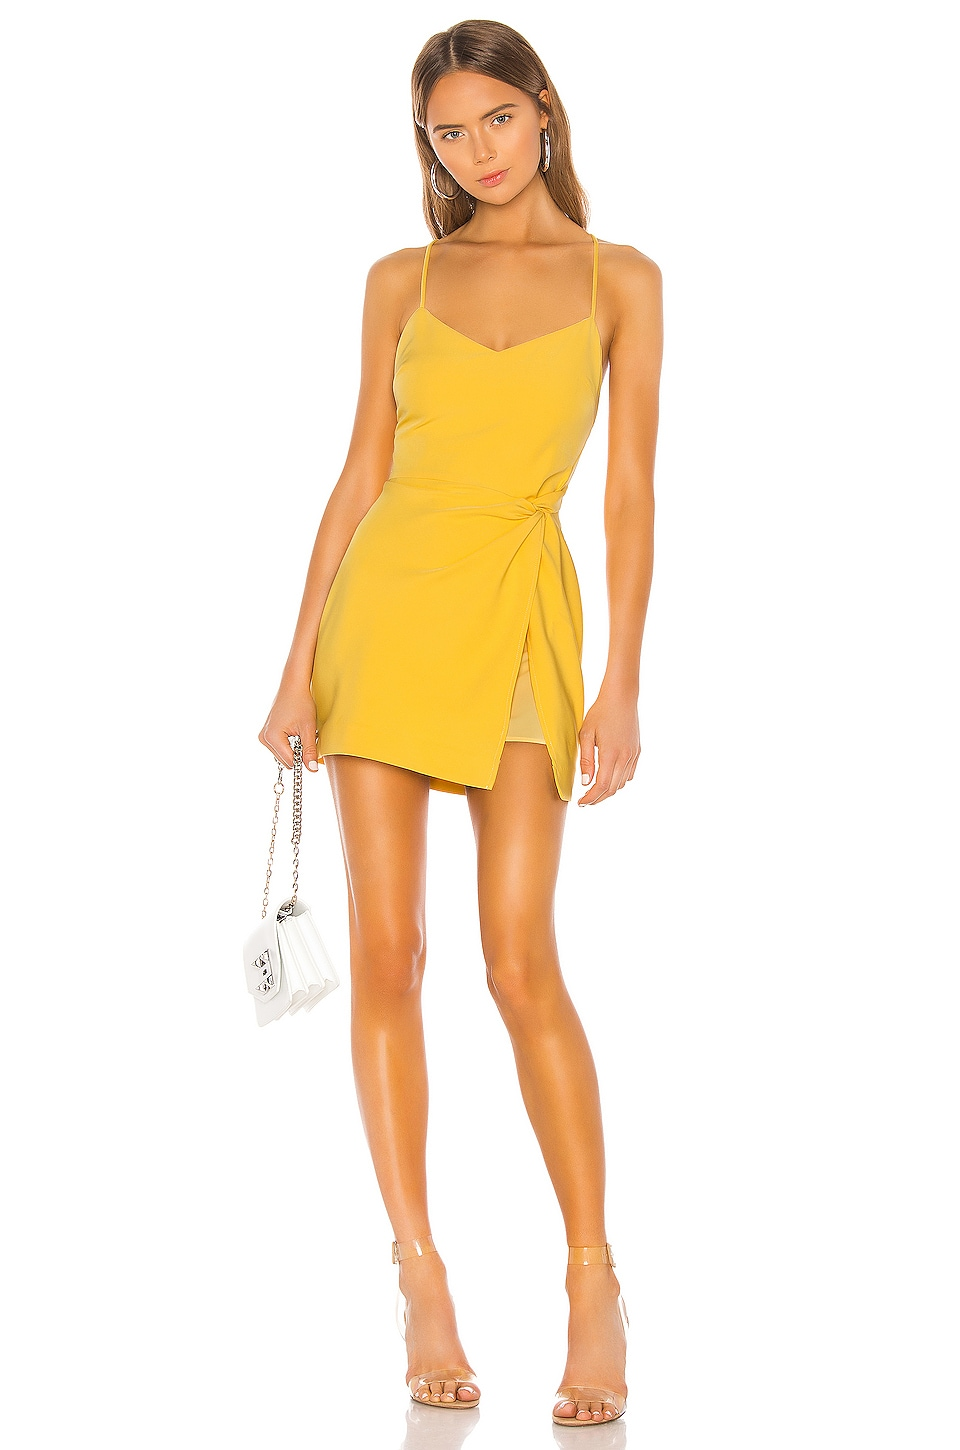 NBD Venice Blvd Dress in Yellow